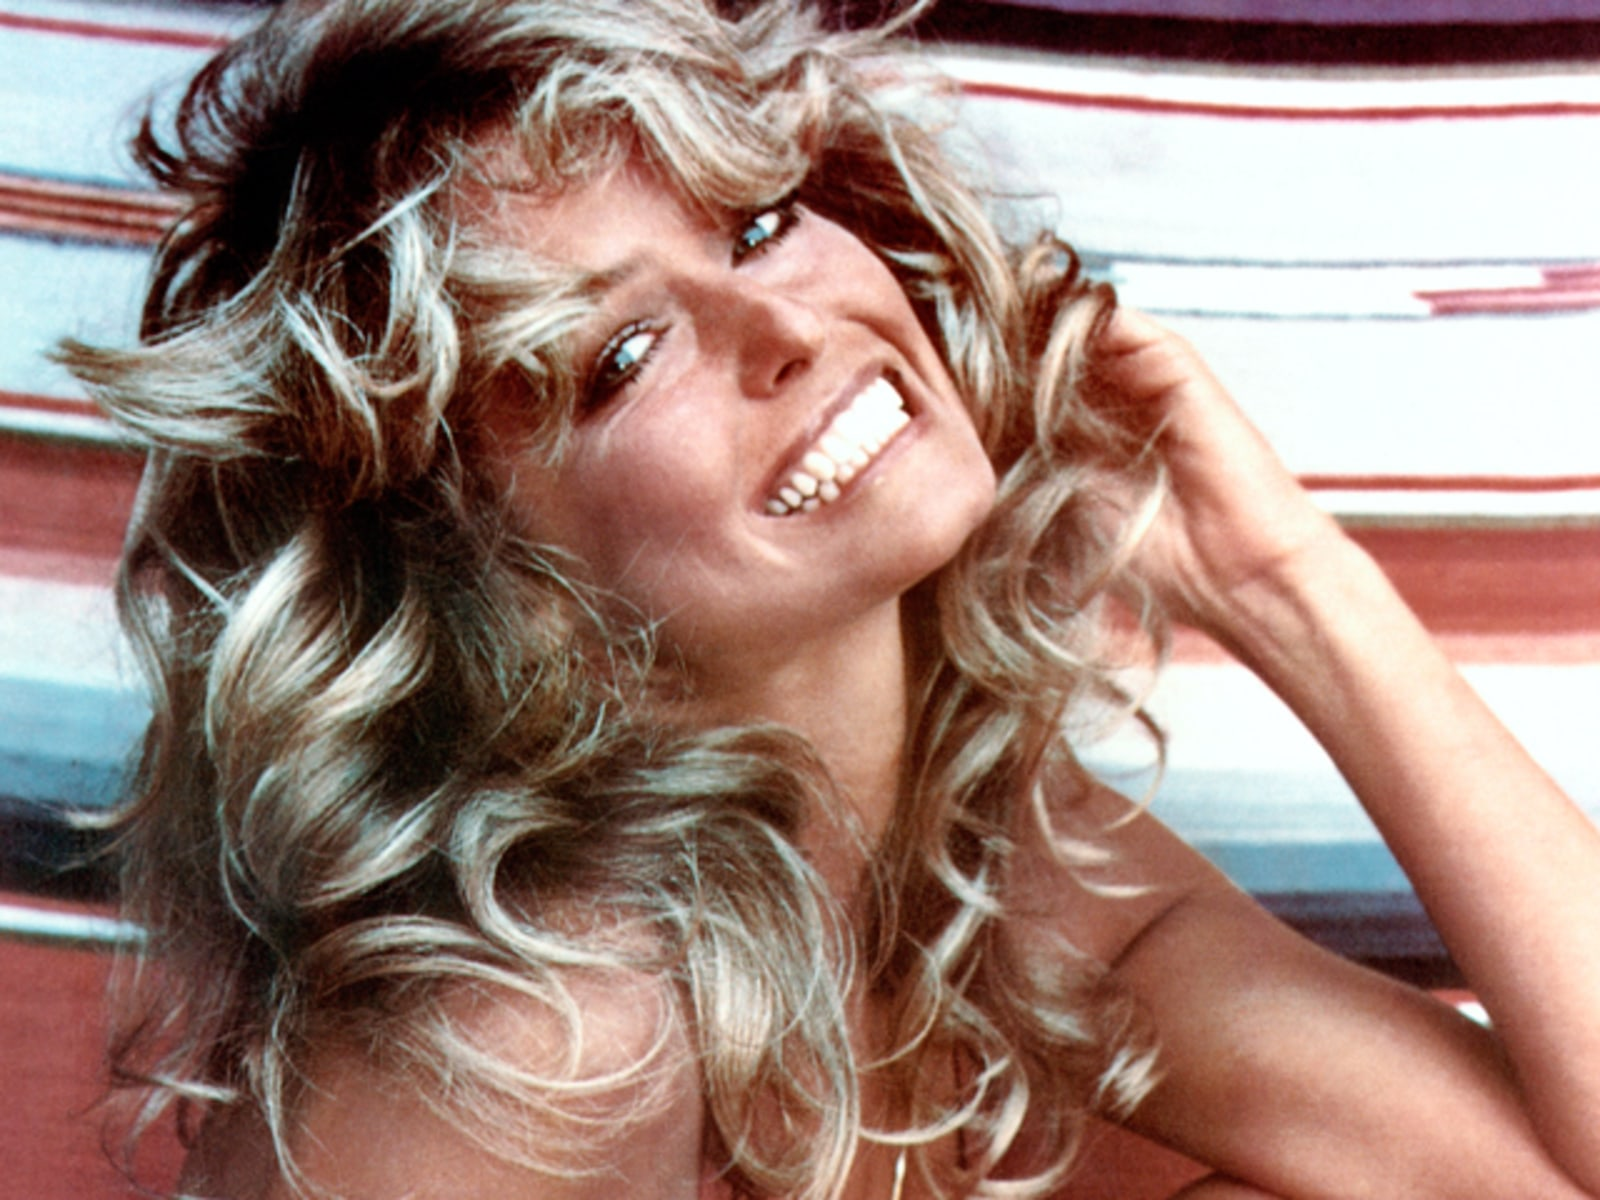 farrah fawcett barbiefarrah fawcett hair, farrah fawcett hair lyrics, farrah fawcett poster, farrah fawcett parents, farrah fawcett 2009, farrah fawcett and cher, farrah fawcett death, farrah fawcett hair by capital cities, farrah fawcett imdb, farrah fawcett makeup, farrah fawcett 2000, farrah fawcett husband, farrah fawcett signature, farrah fawcett barbie, farrah fawcett young, farrah fawcett hair tutorial, farrah fawcett hair meaning, farrah fawcett skateboard, farrah fawcett barbie ebay, farrah fawcett interview